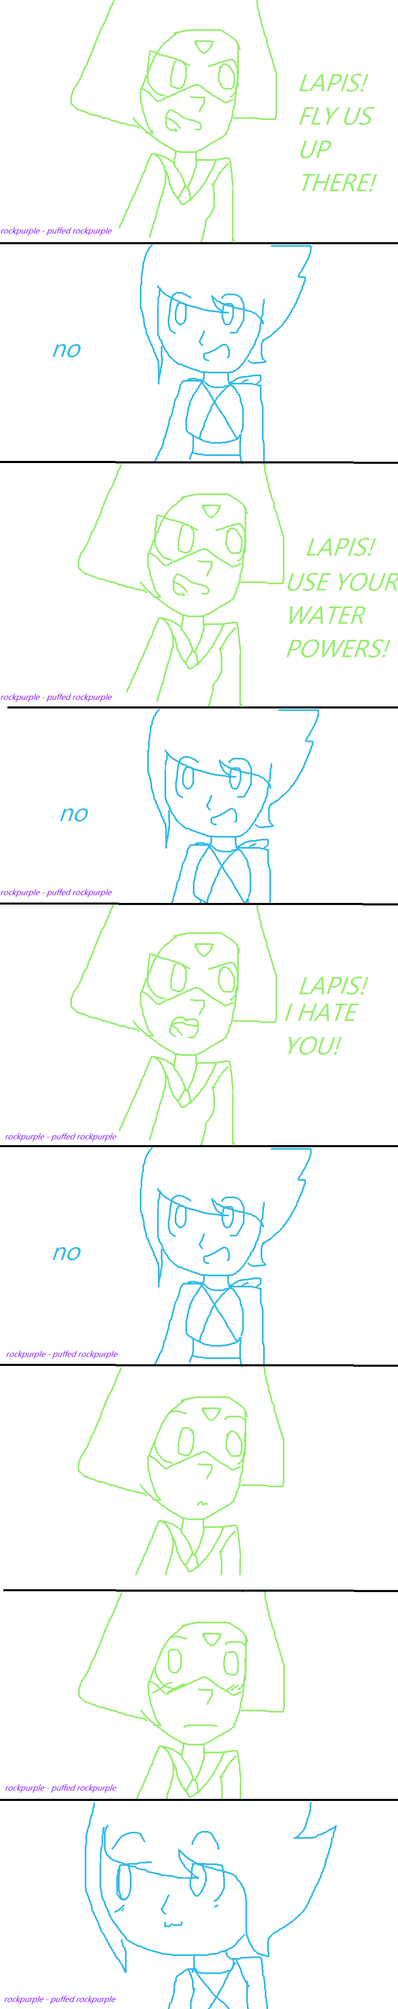 The Lapidot Ship Is Getting Real- by RockPurple